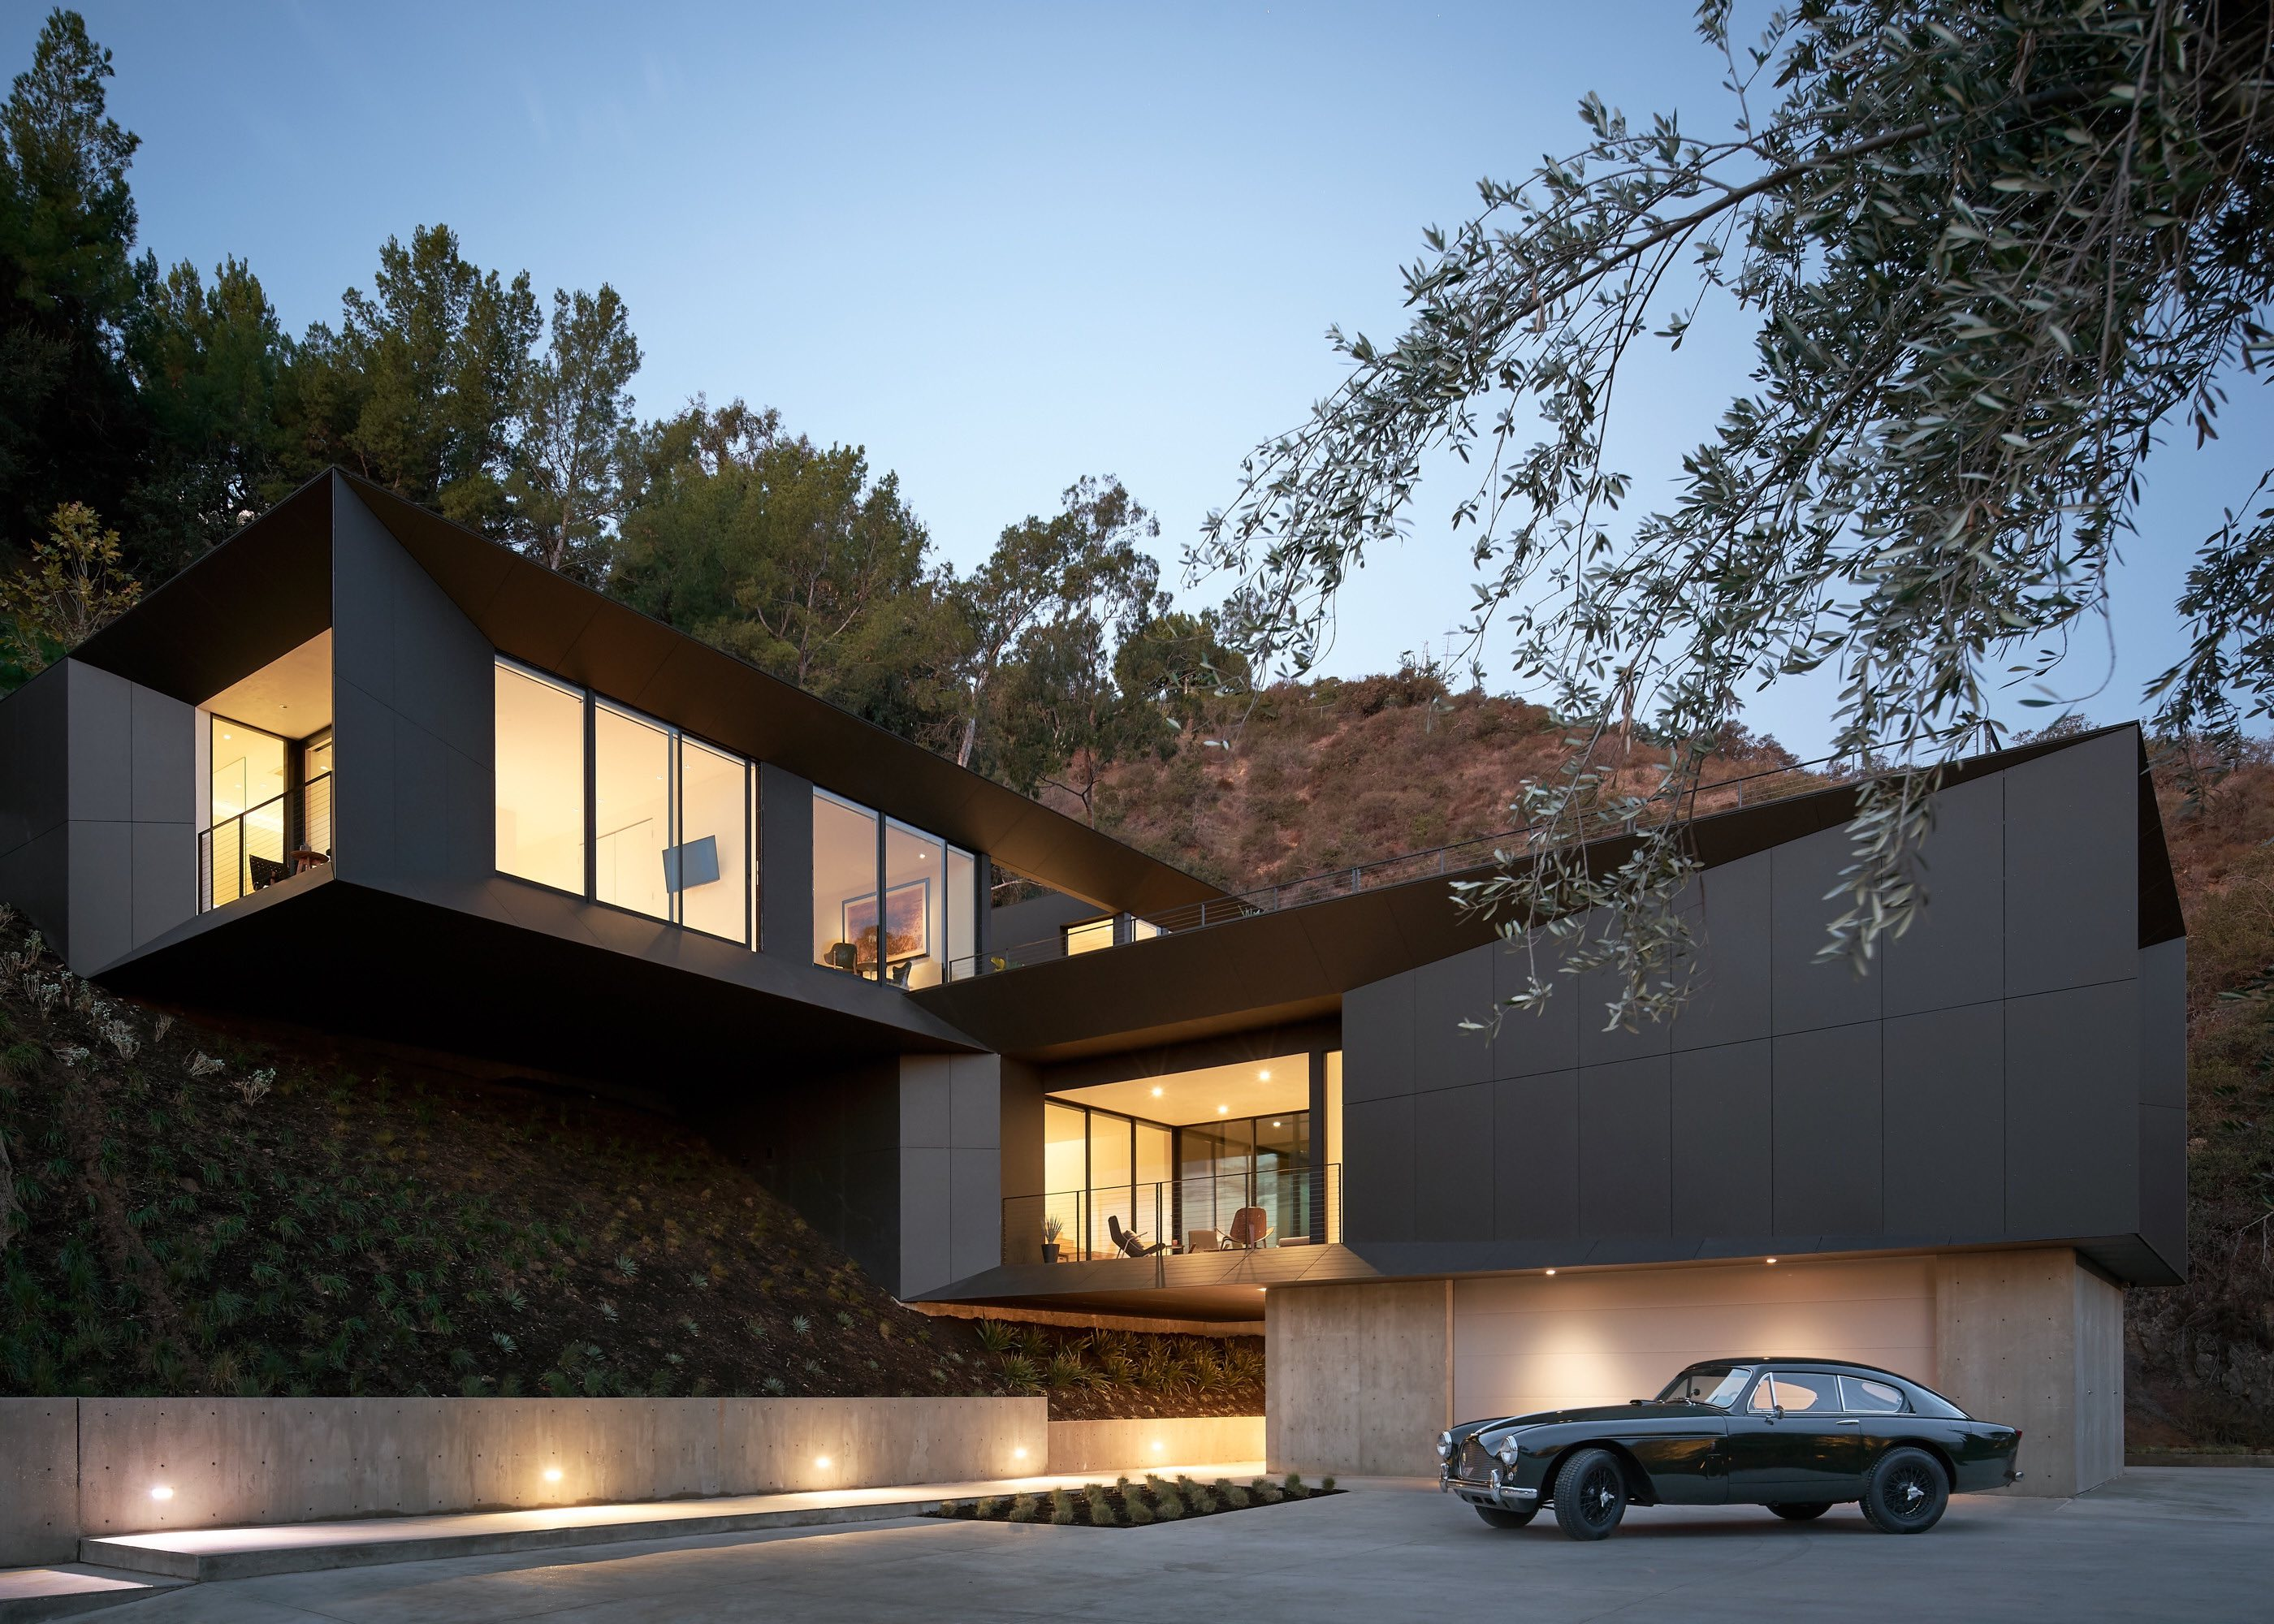 black house with illumination located on a hill